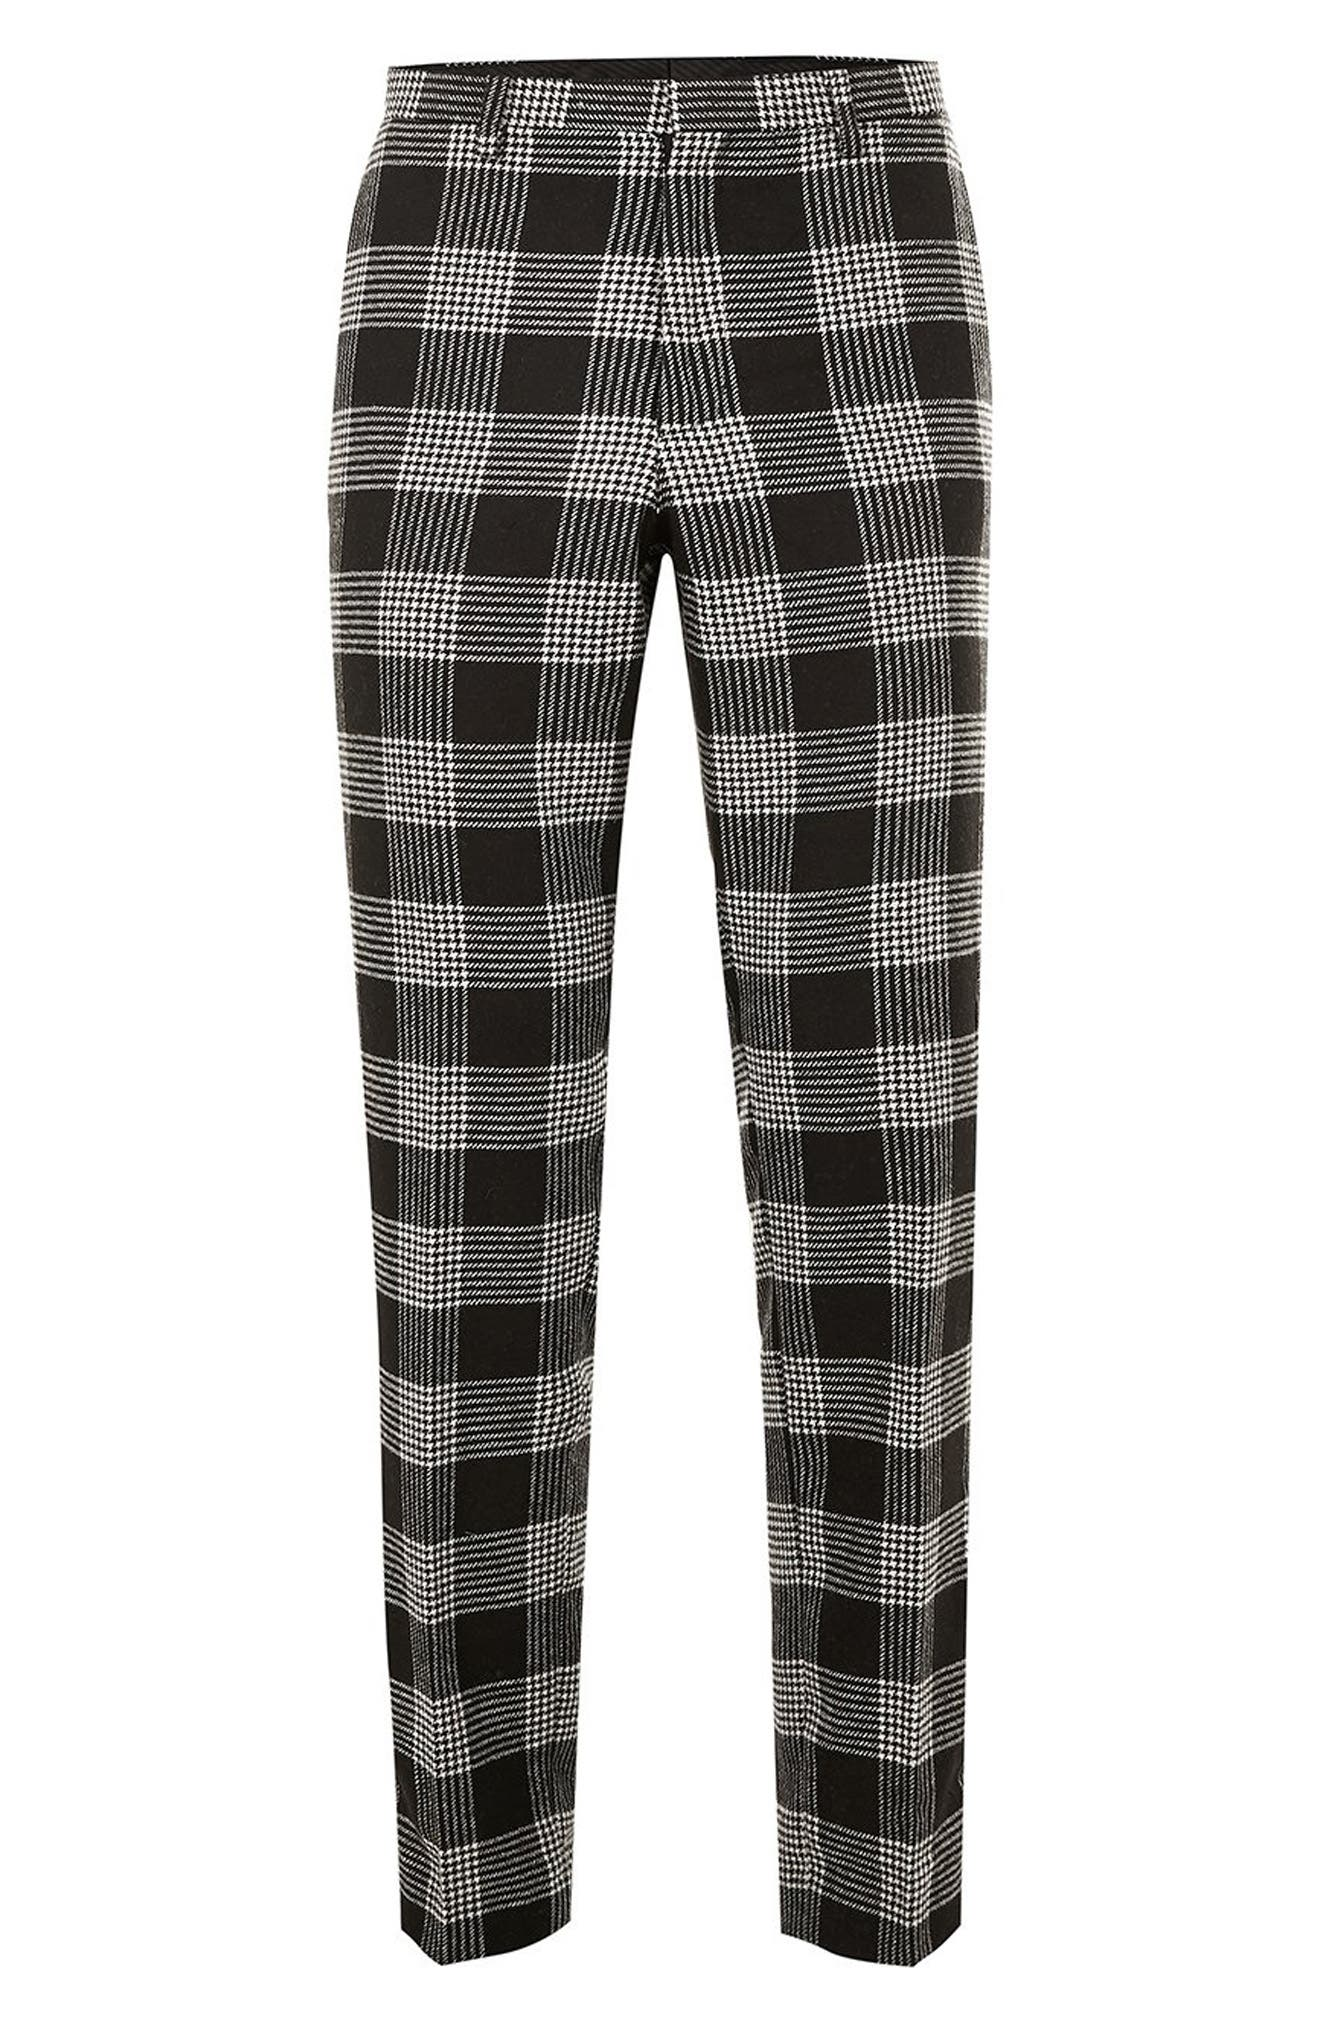 Leigh Classic Check Slim Fit Trousers,                             Alternate thumbnail 4, color,                             BLACK MULTI